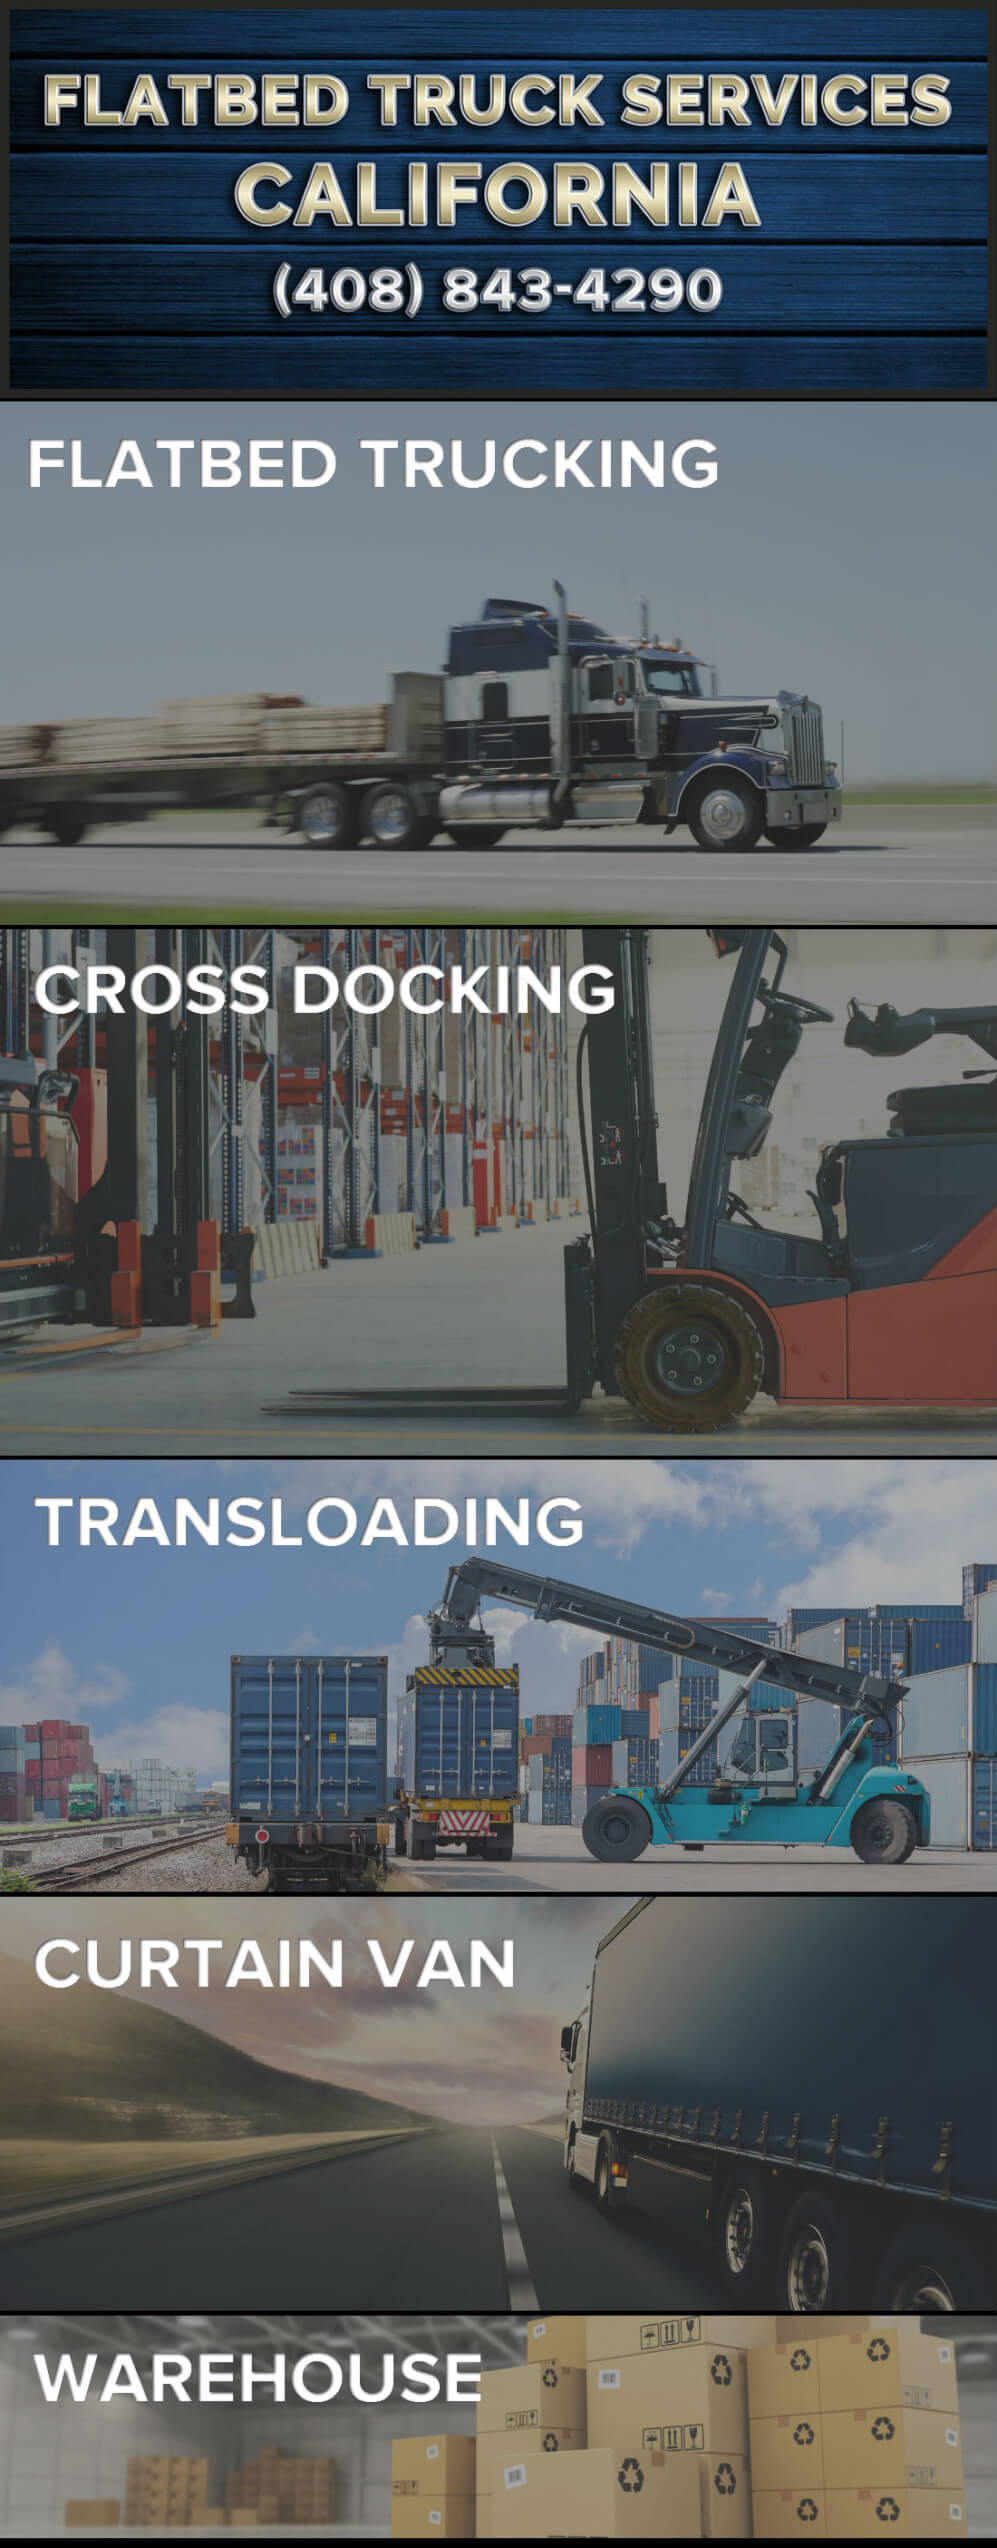 Flatbed Truck Services Cross Docking Transloading Curtain Van